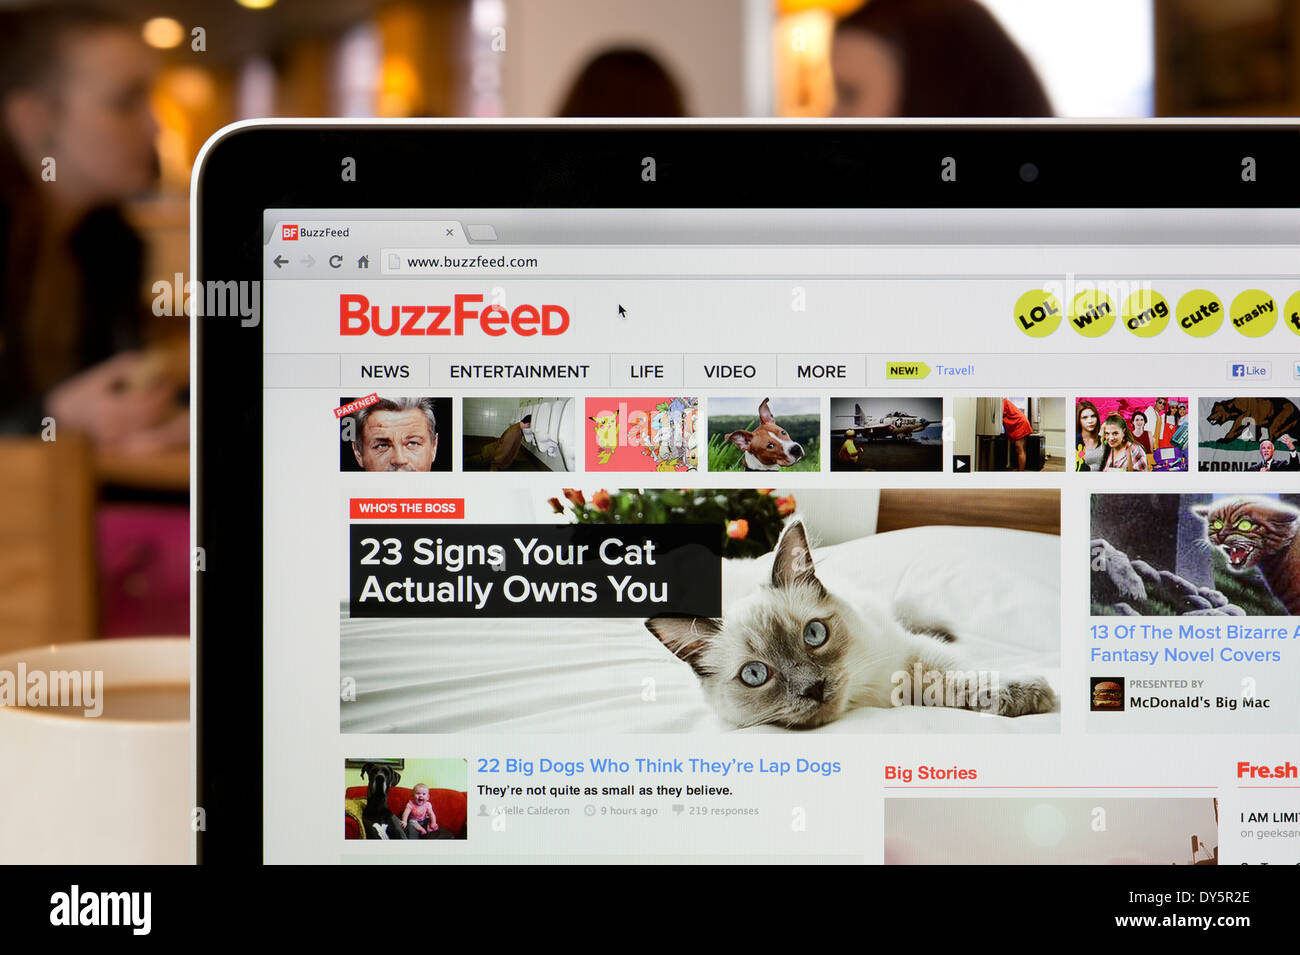 The BuzzFeed Website Shot In A Coffee Shop Environment Editorial Use Only Print